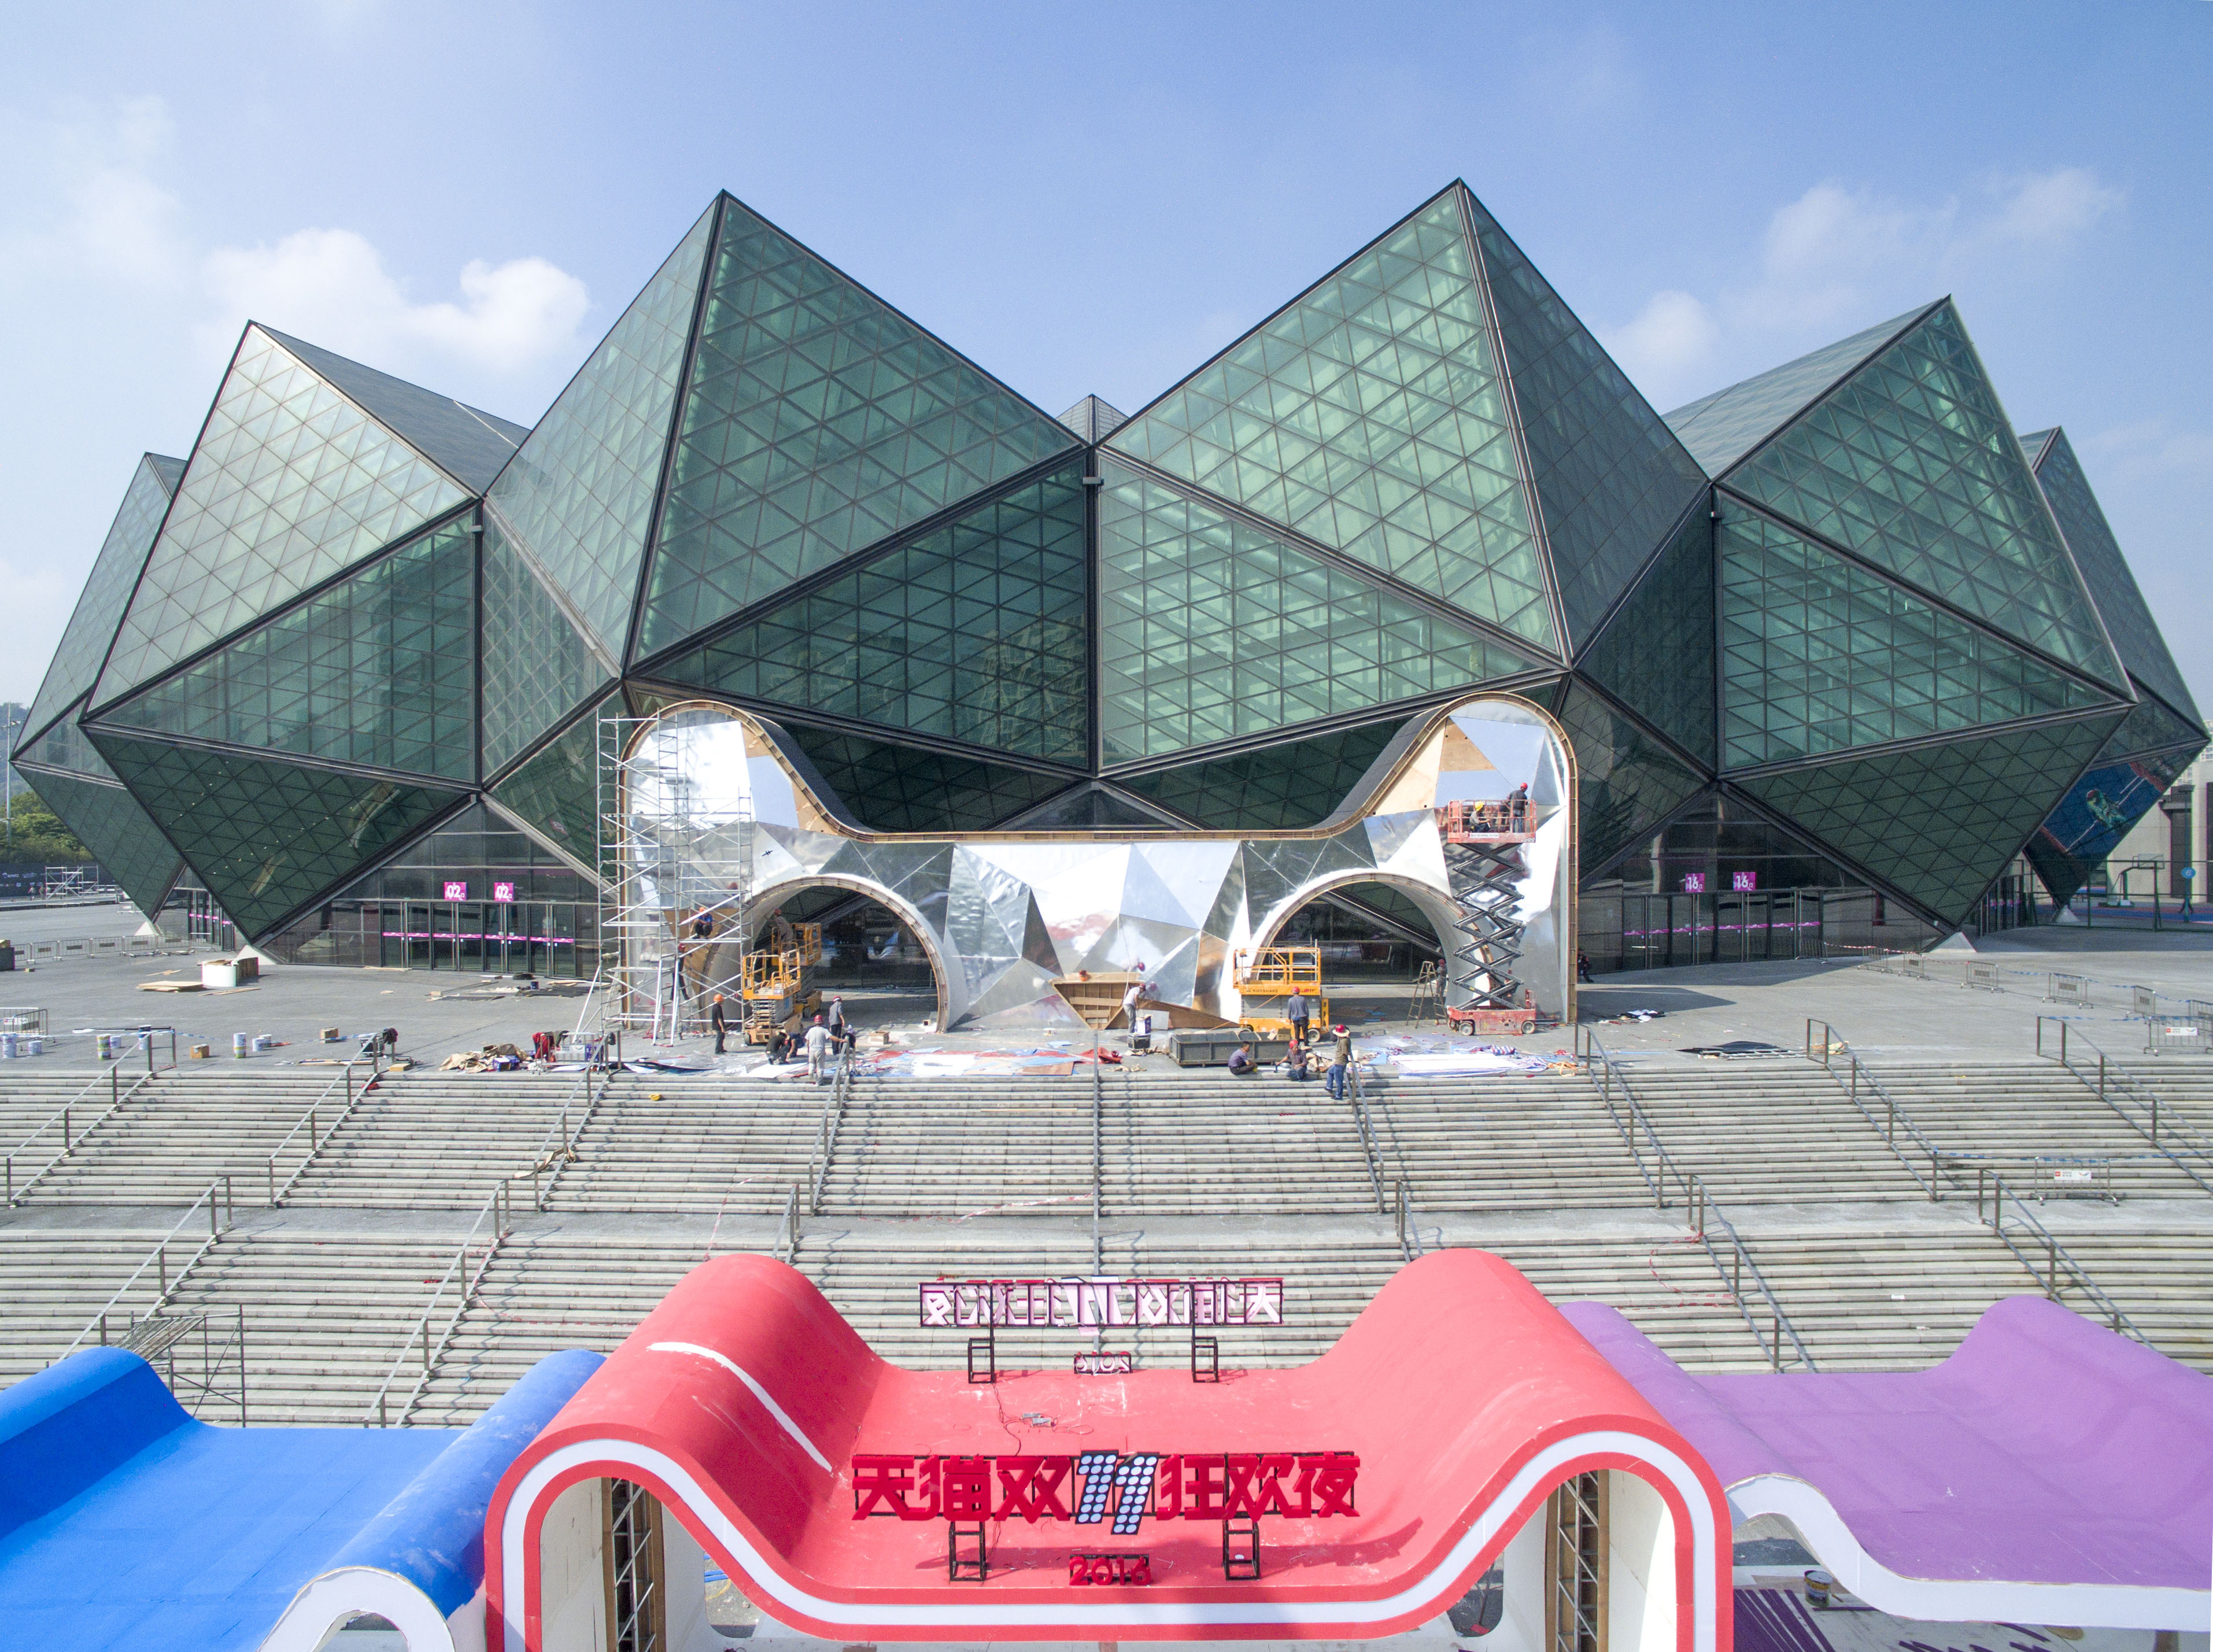 Slide 52 of 57: SHENZHEN, CHINA - NOVEMBER 06: General view of the Shenzhen Universiade Sports Centre which is decorated for the 11.11 Global Shopping Festival on November 6, 2016 in Shenzhen, Guangdong Province of China. Alibaba Group will hold a gala of the 11.11 Global Shopping Festival at Shenzhen Universiade Sports Centre on the night before November 11 which is also called the Singles\' Day. (Photo by VCG)